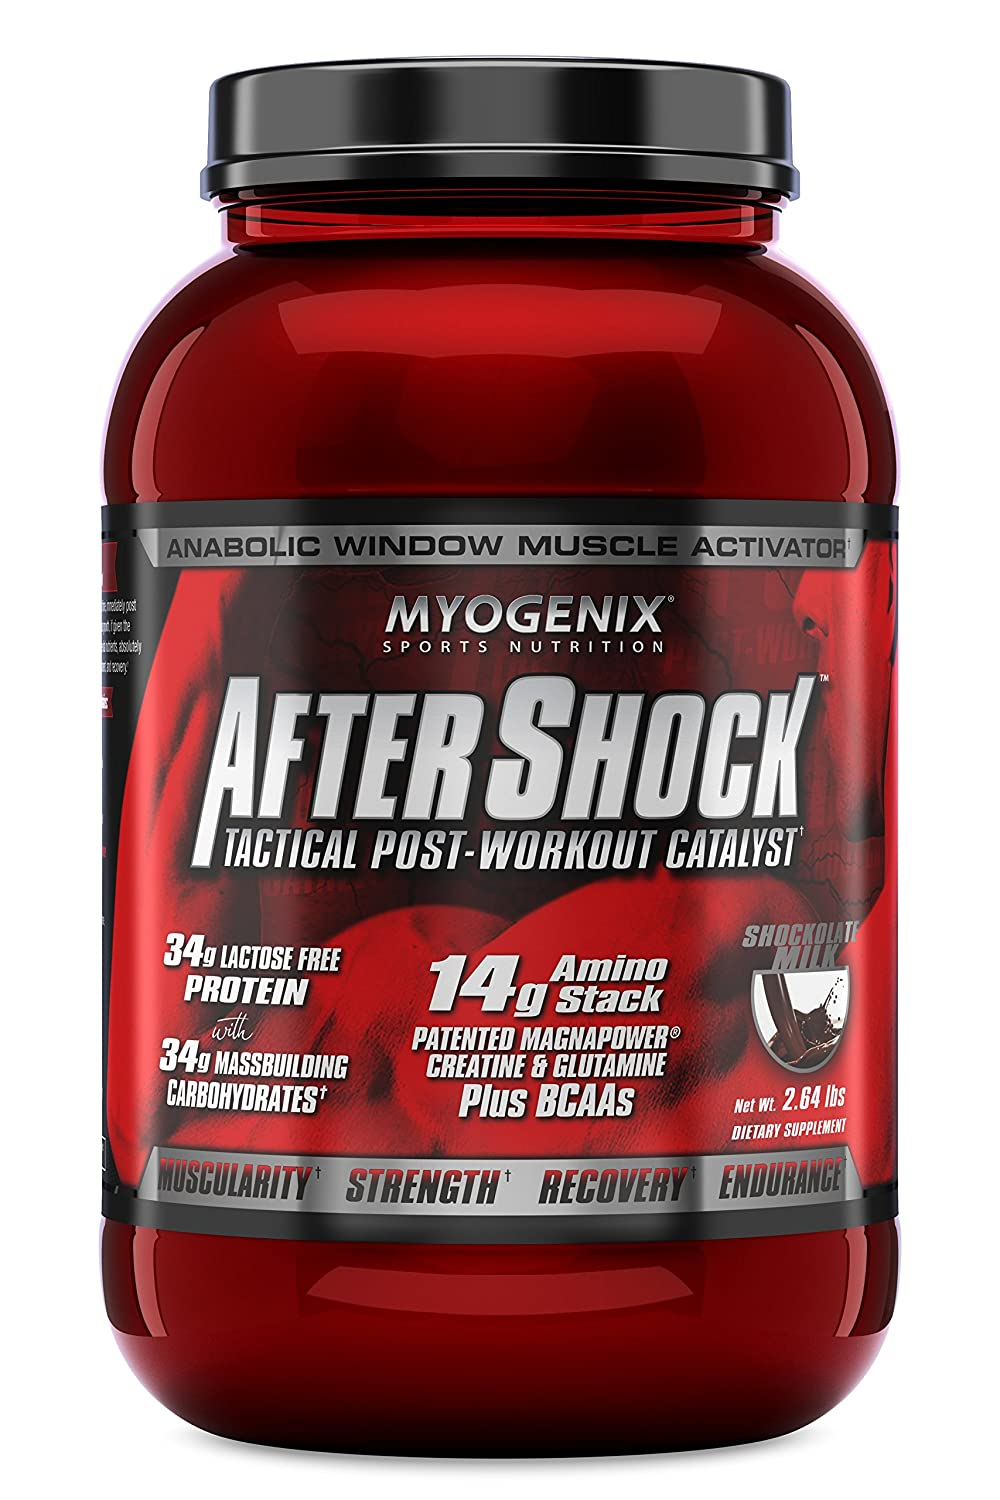 Myogenix Aftershock Shockolate Milk Protein Powder, 2.64 Pound